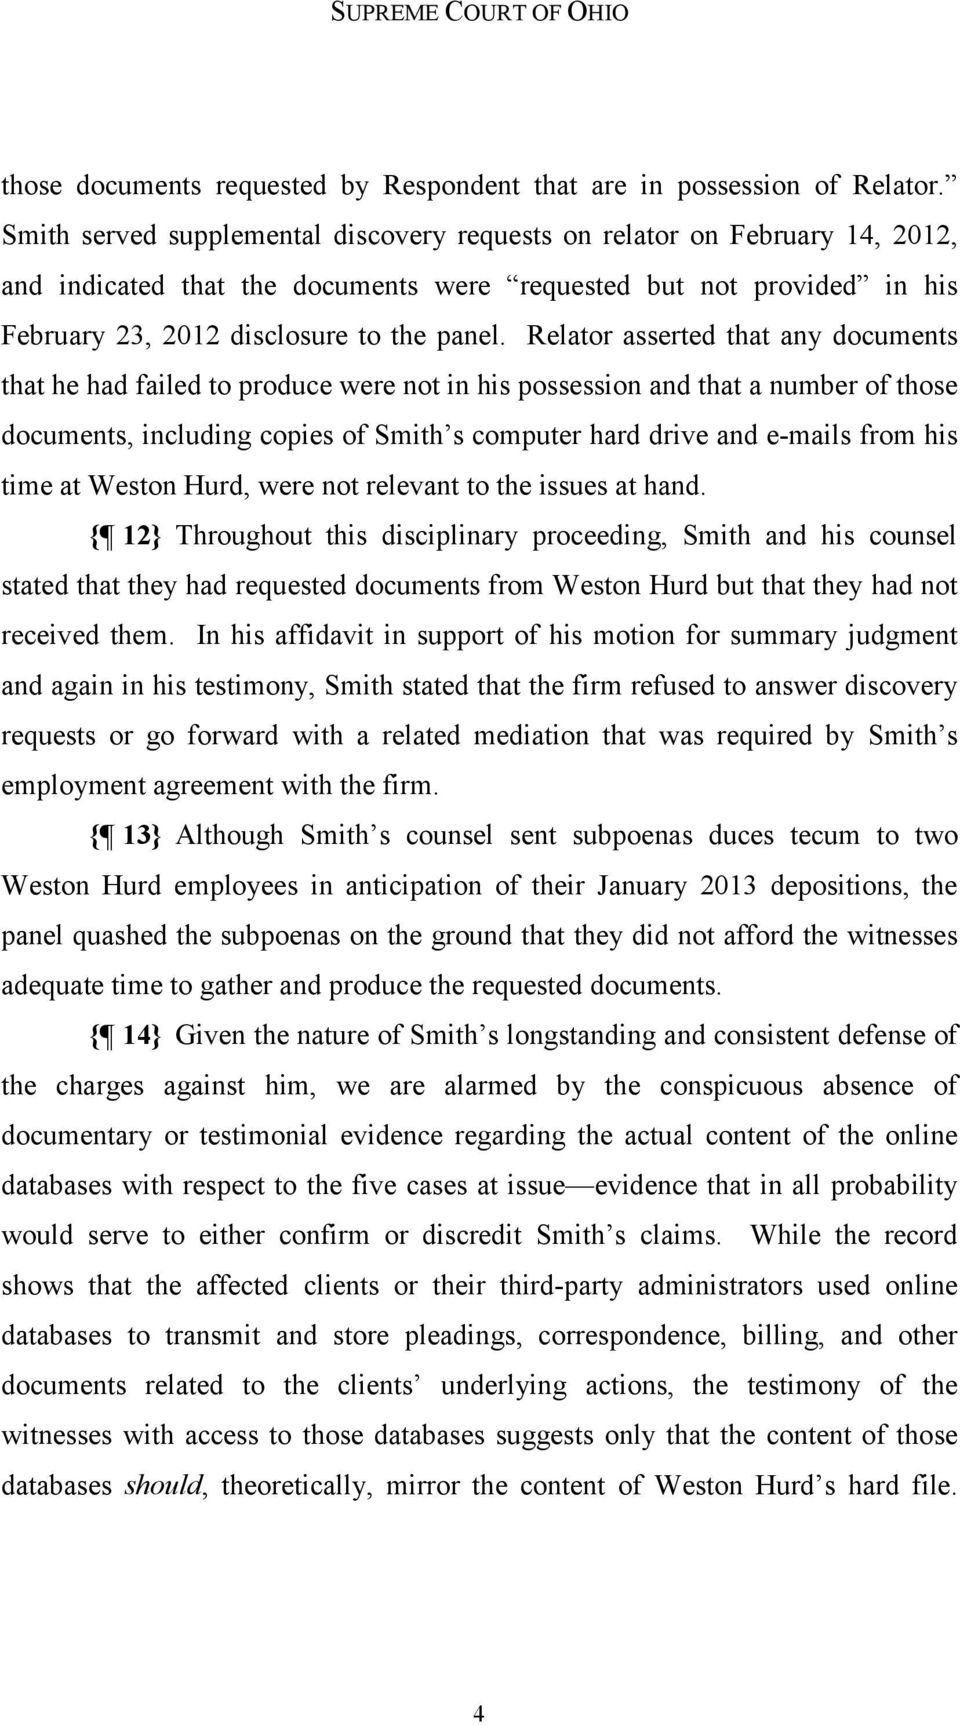 Relator asserted that any documents that he had failed to produce were not in his possession and that a number of those documents, including copies of Smith s computer hard drive and e-mails from his